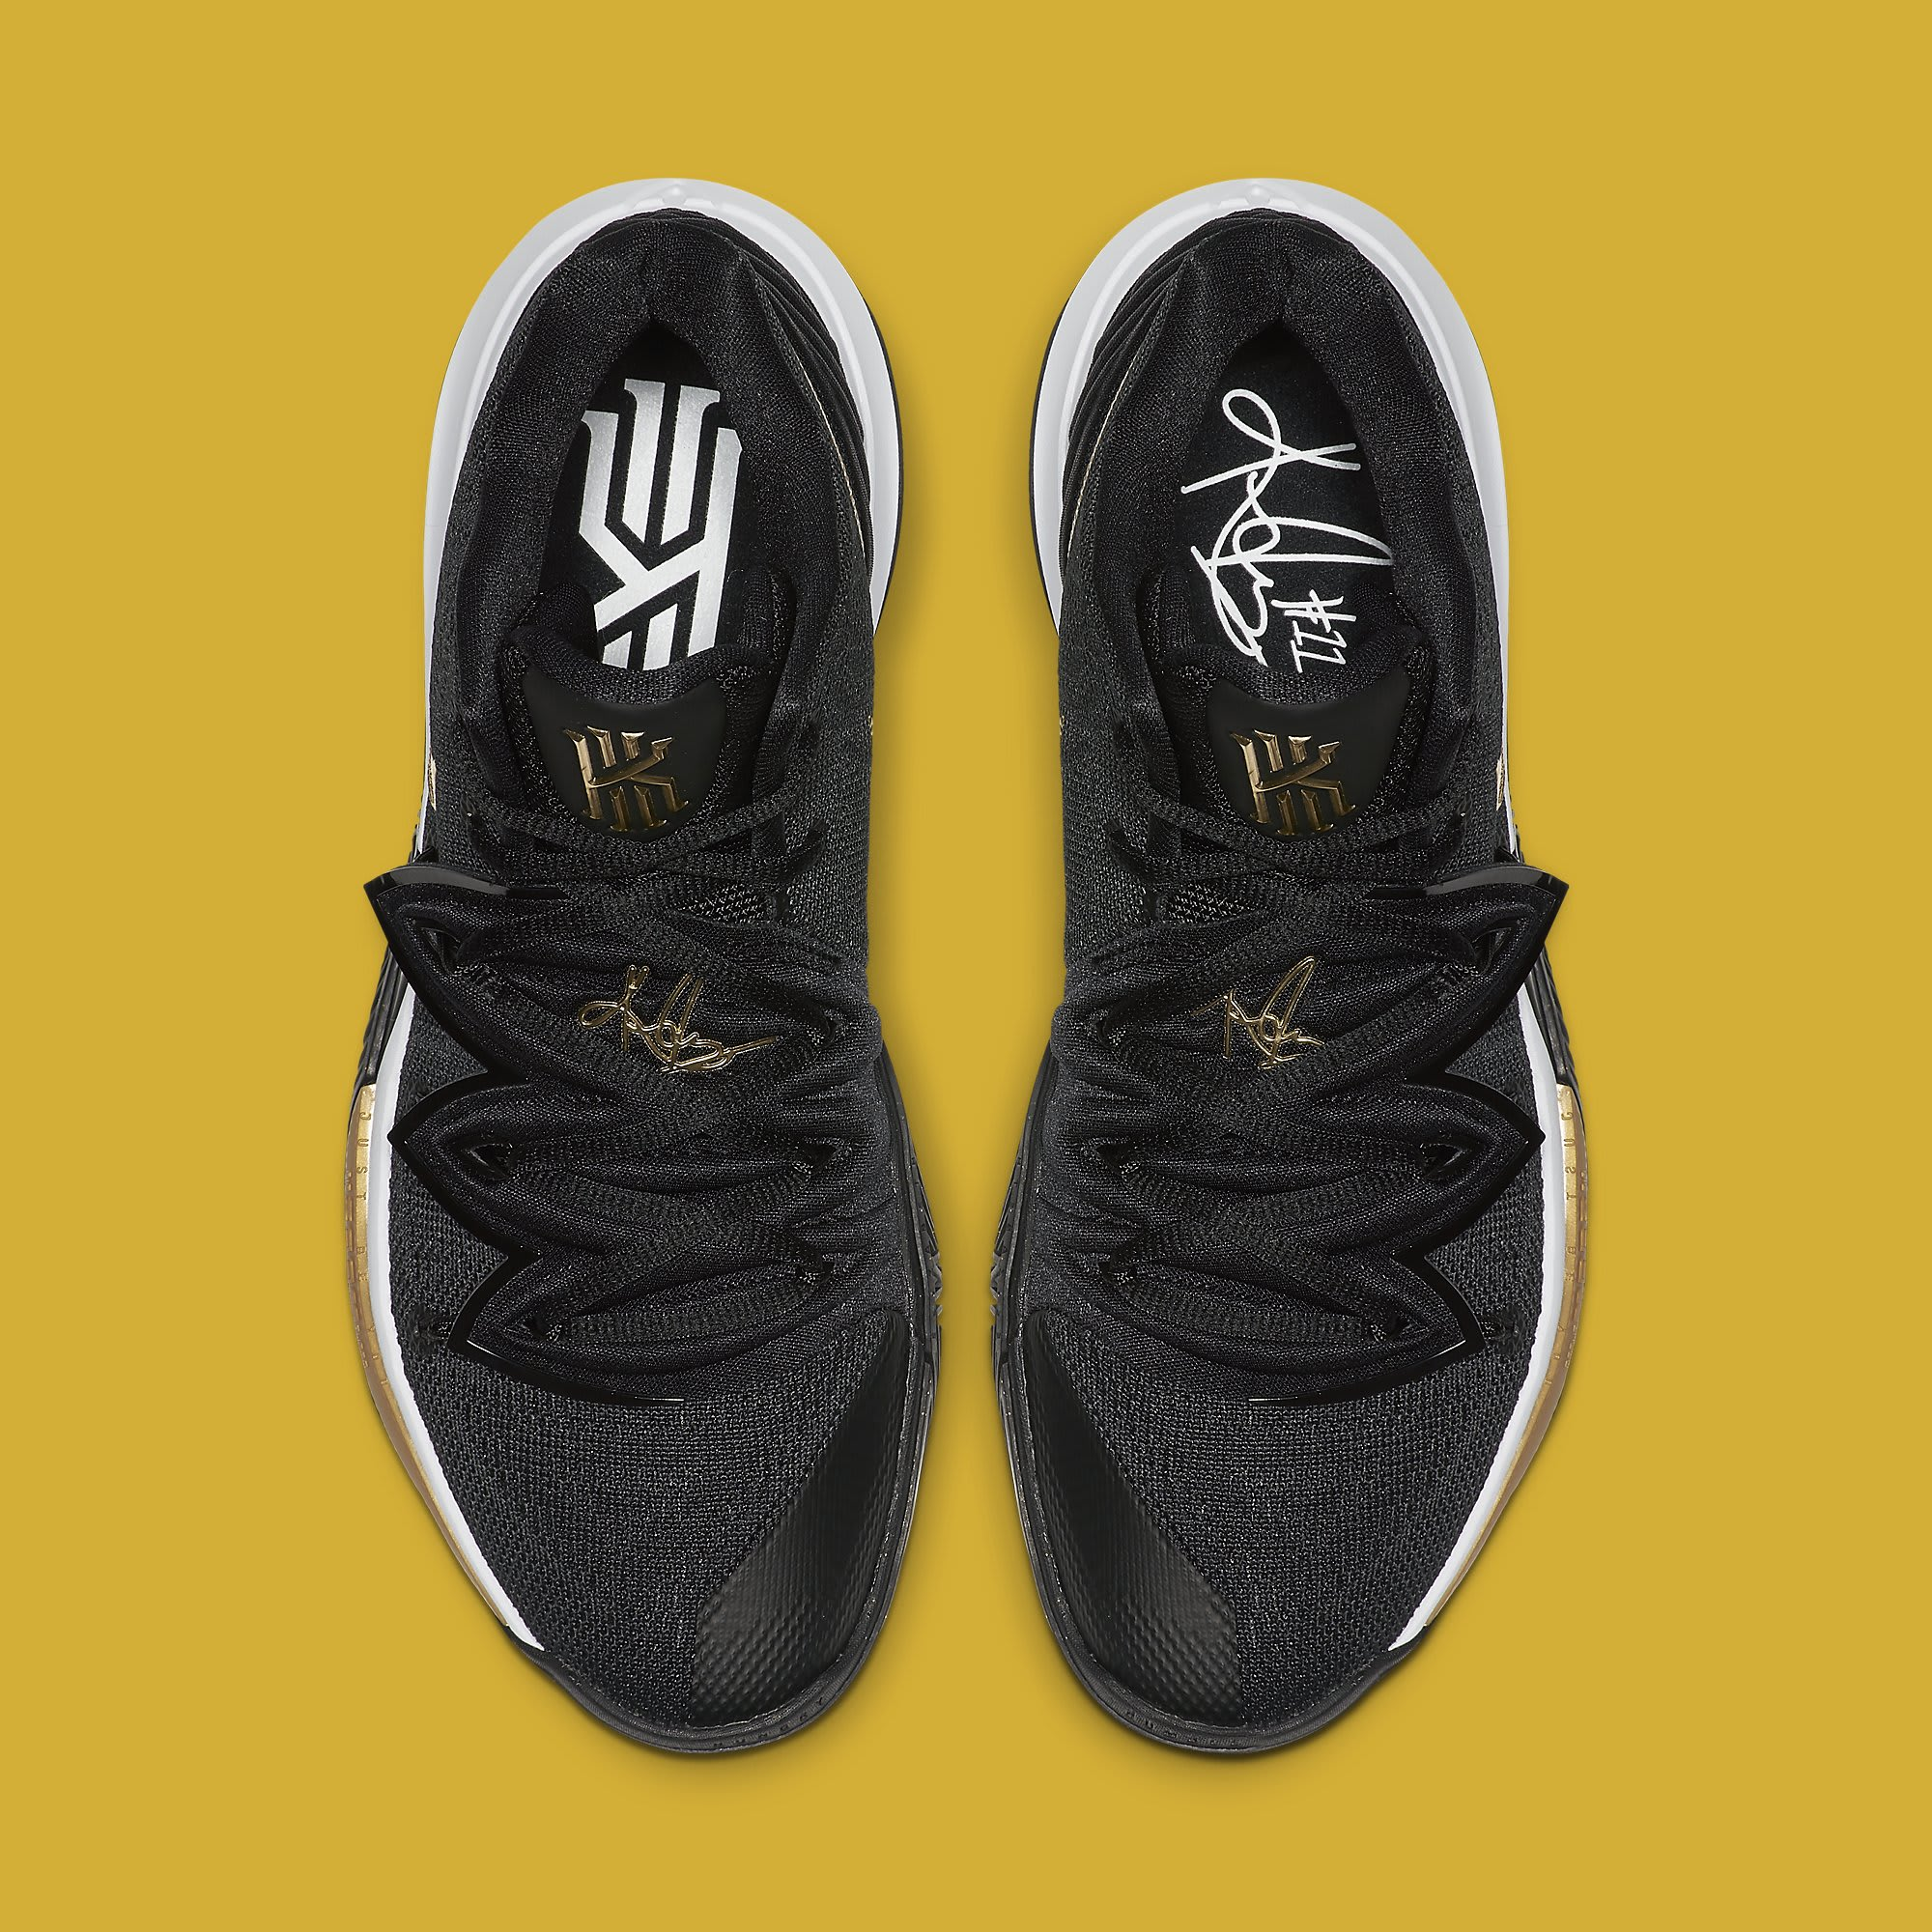 Nike Kyrie 5 'Black/Gold' AO2918-007 Top